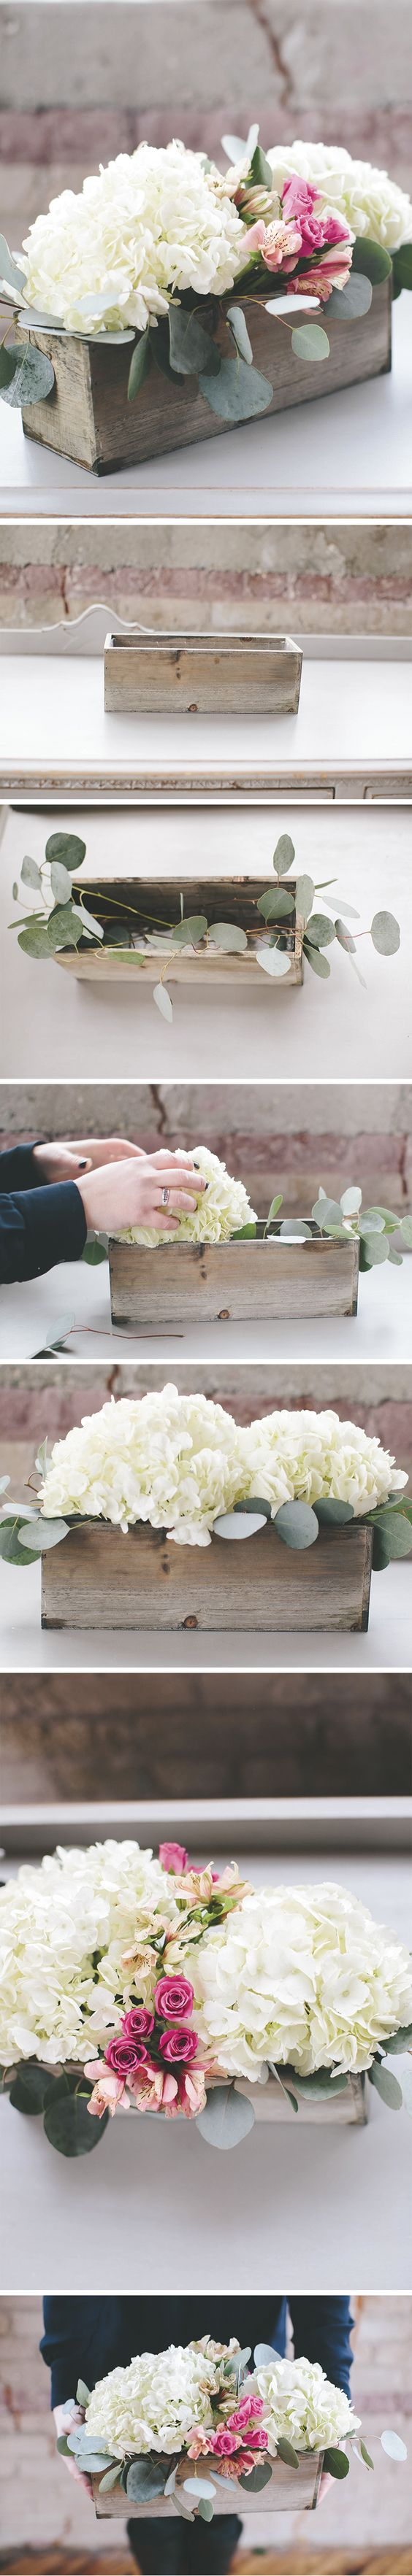 How To: A Modern DIY Hydrangea Centerpiece That Anyone Can Make: